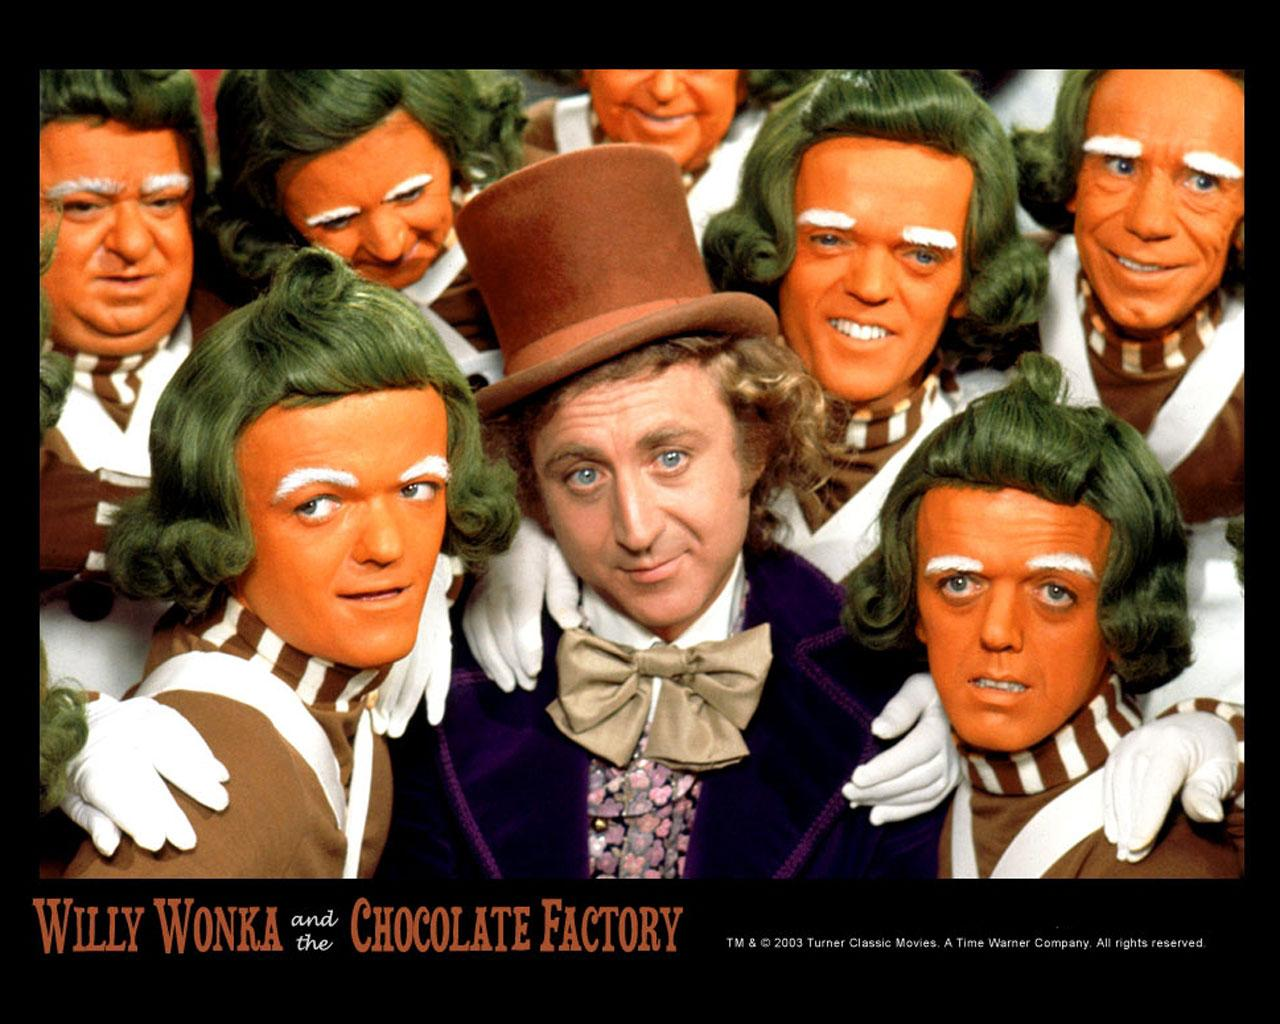 Willy Wonka & The Chocolate Factory -  Wallpaper #1 1280 x 1024